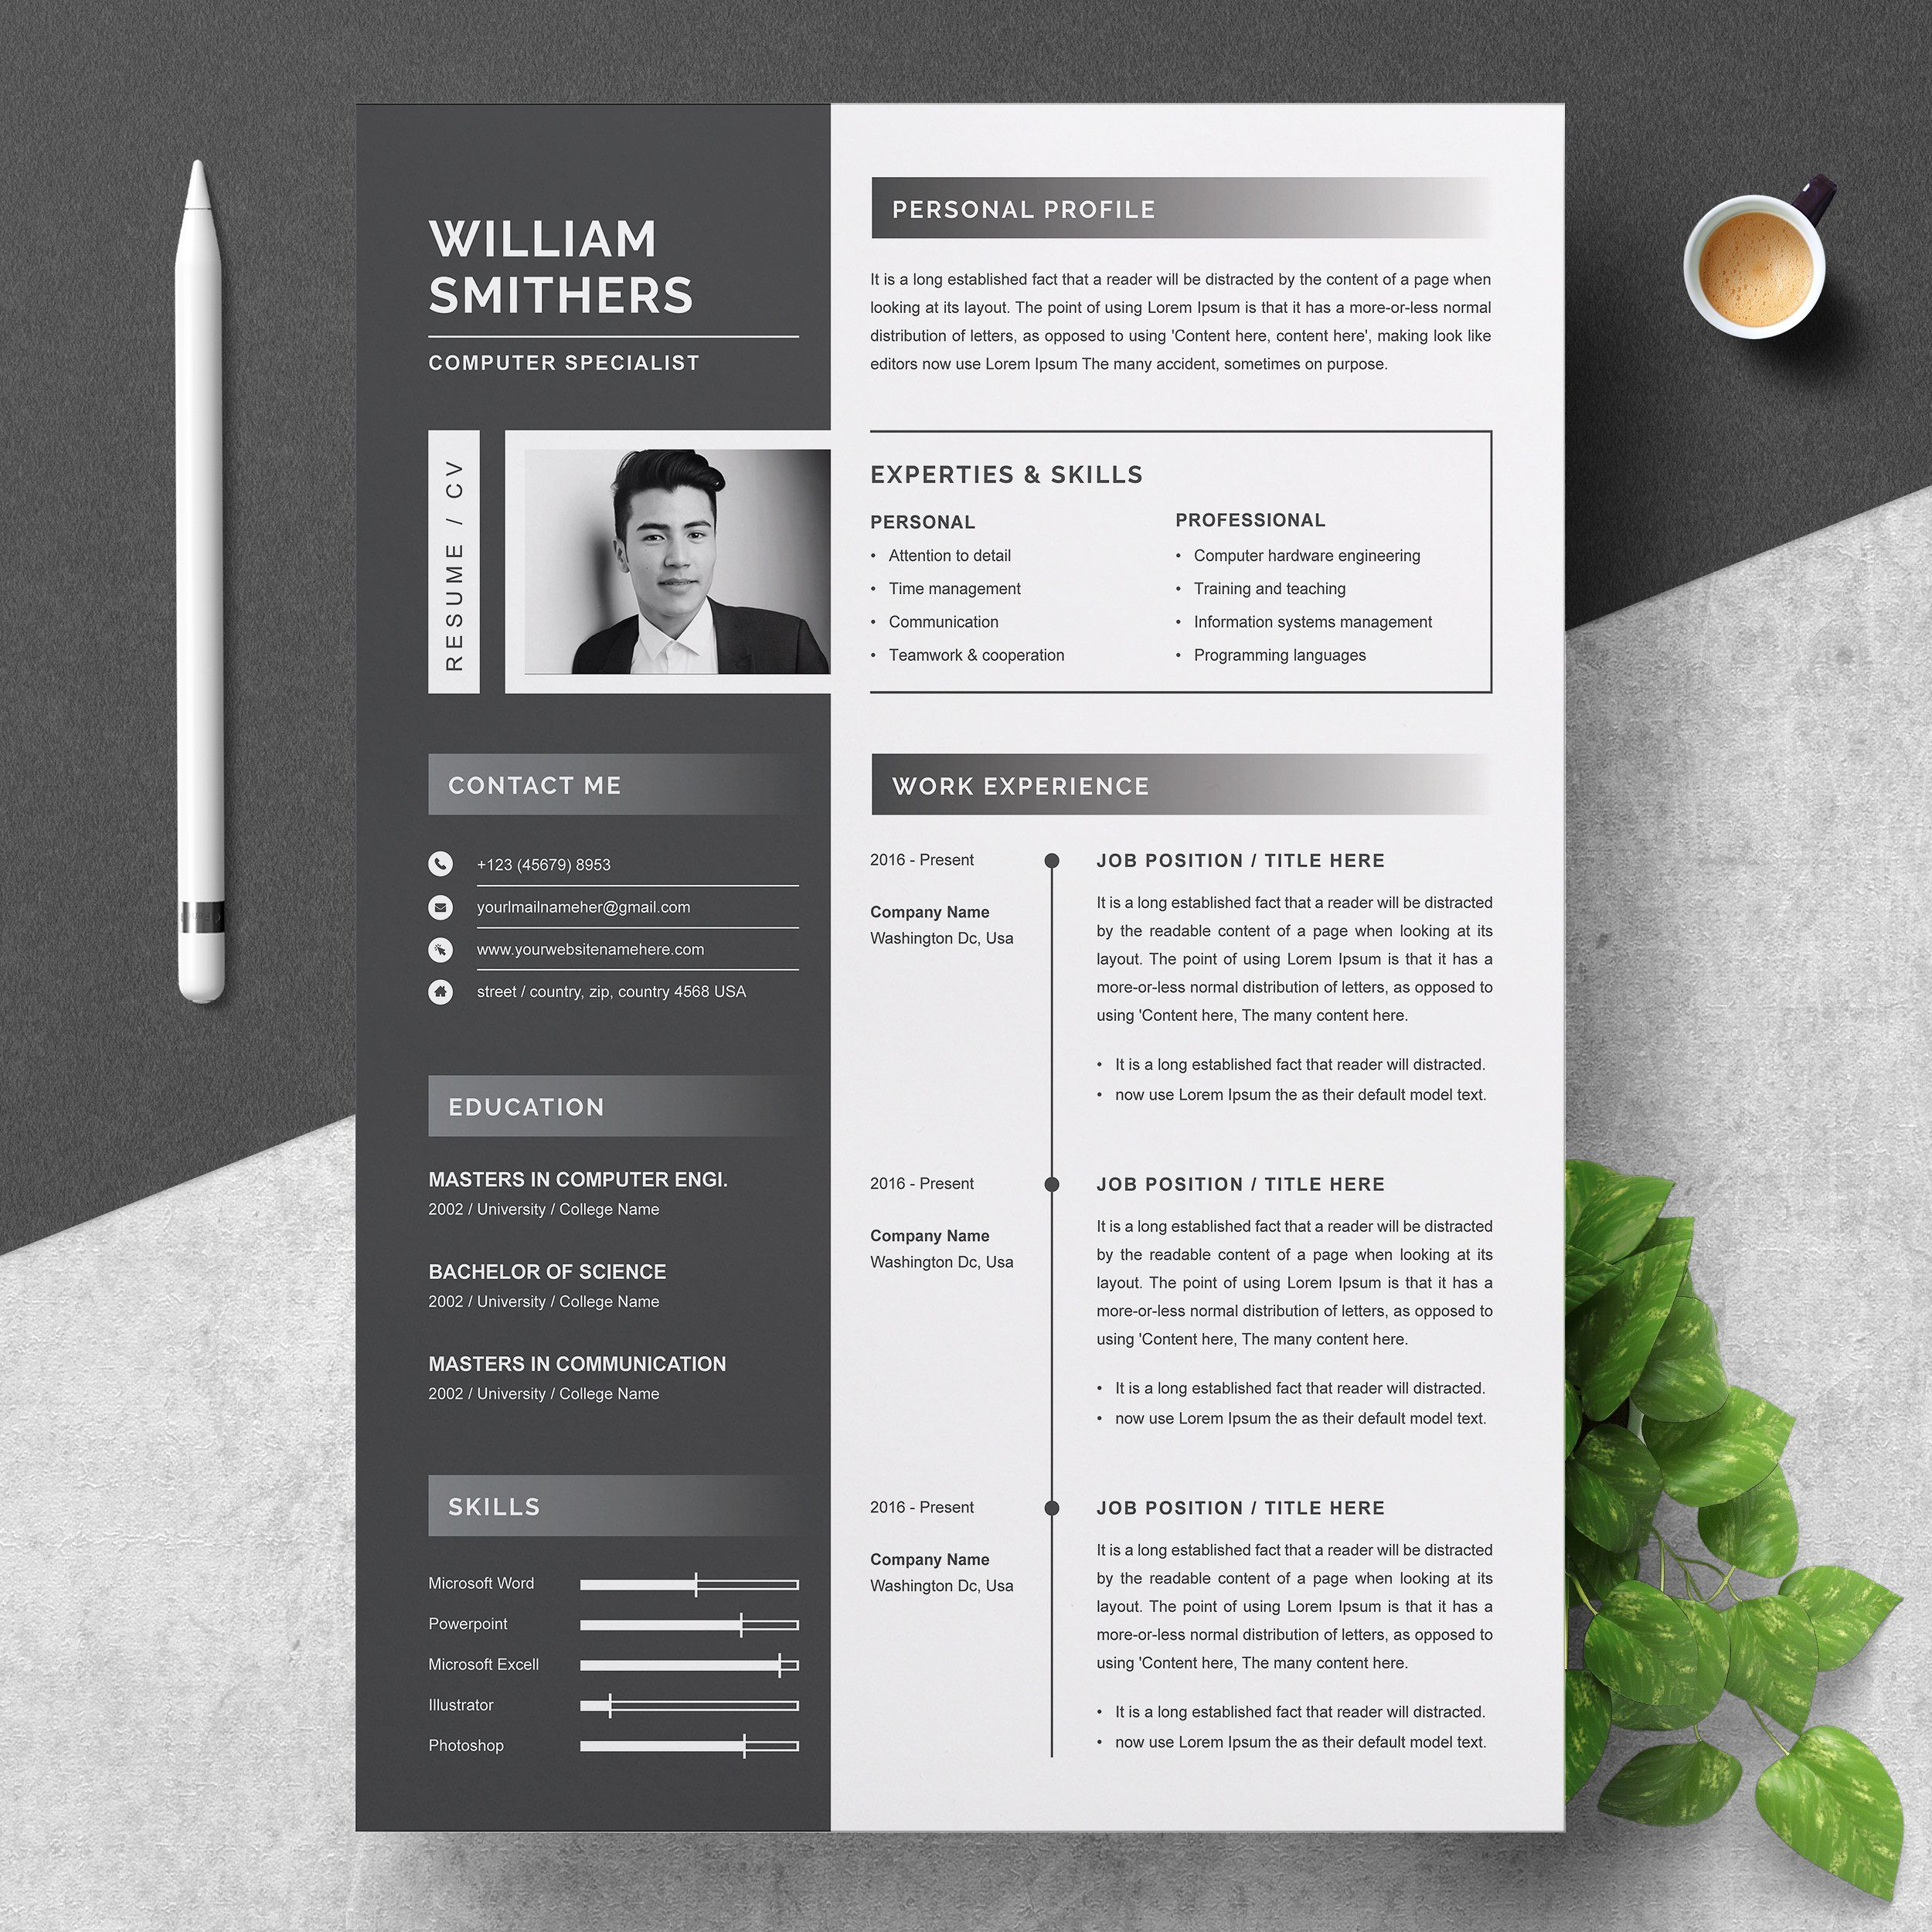 resume template design templates creative market free simple college student for kpmg Resume Creative Market Resume Free